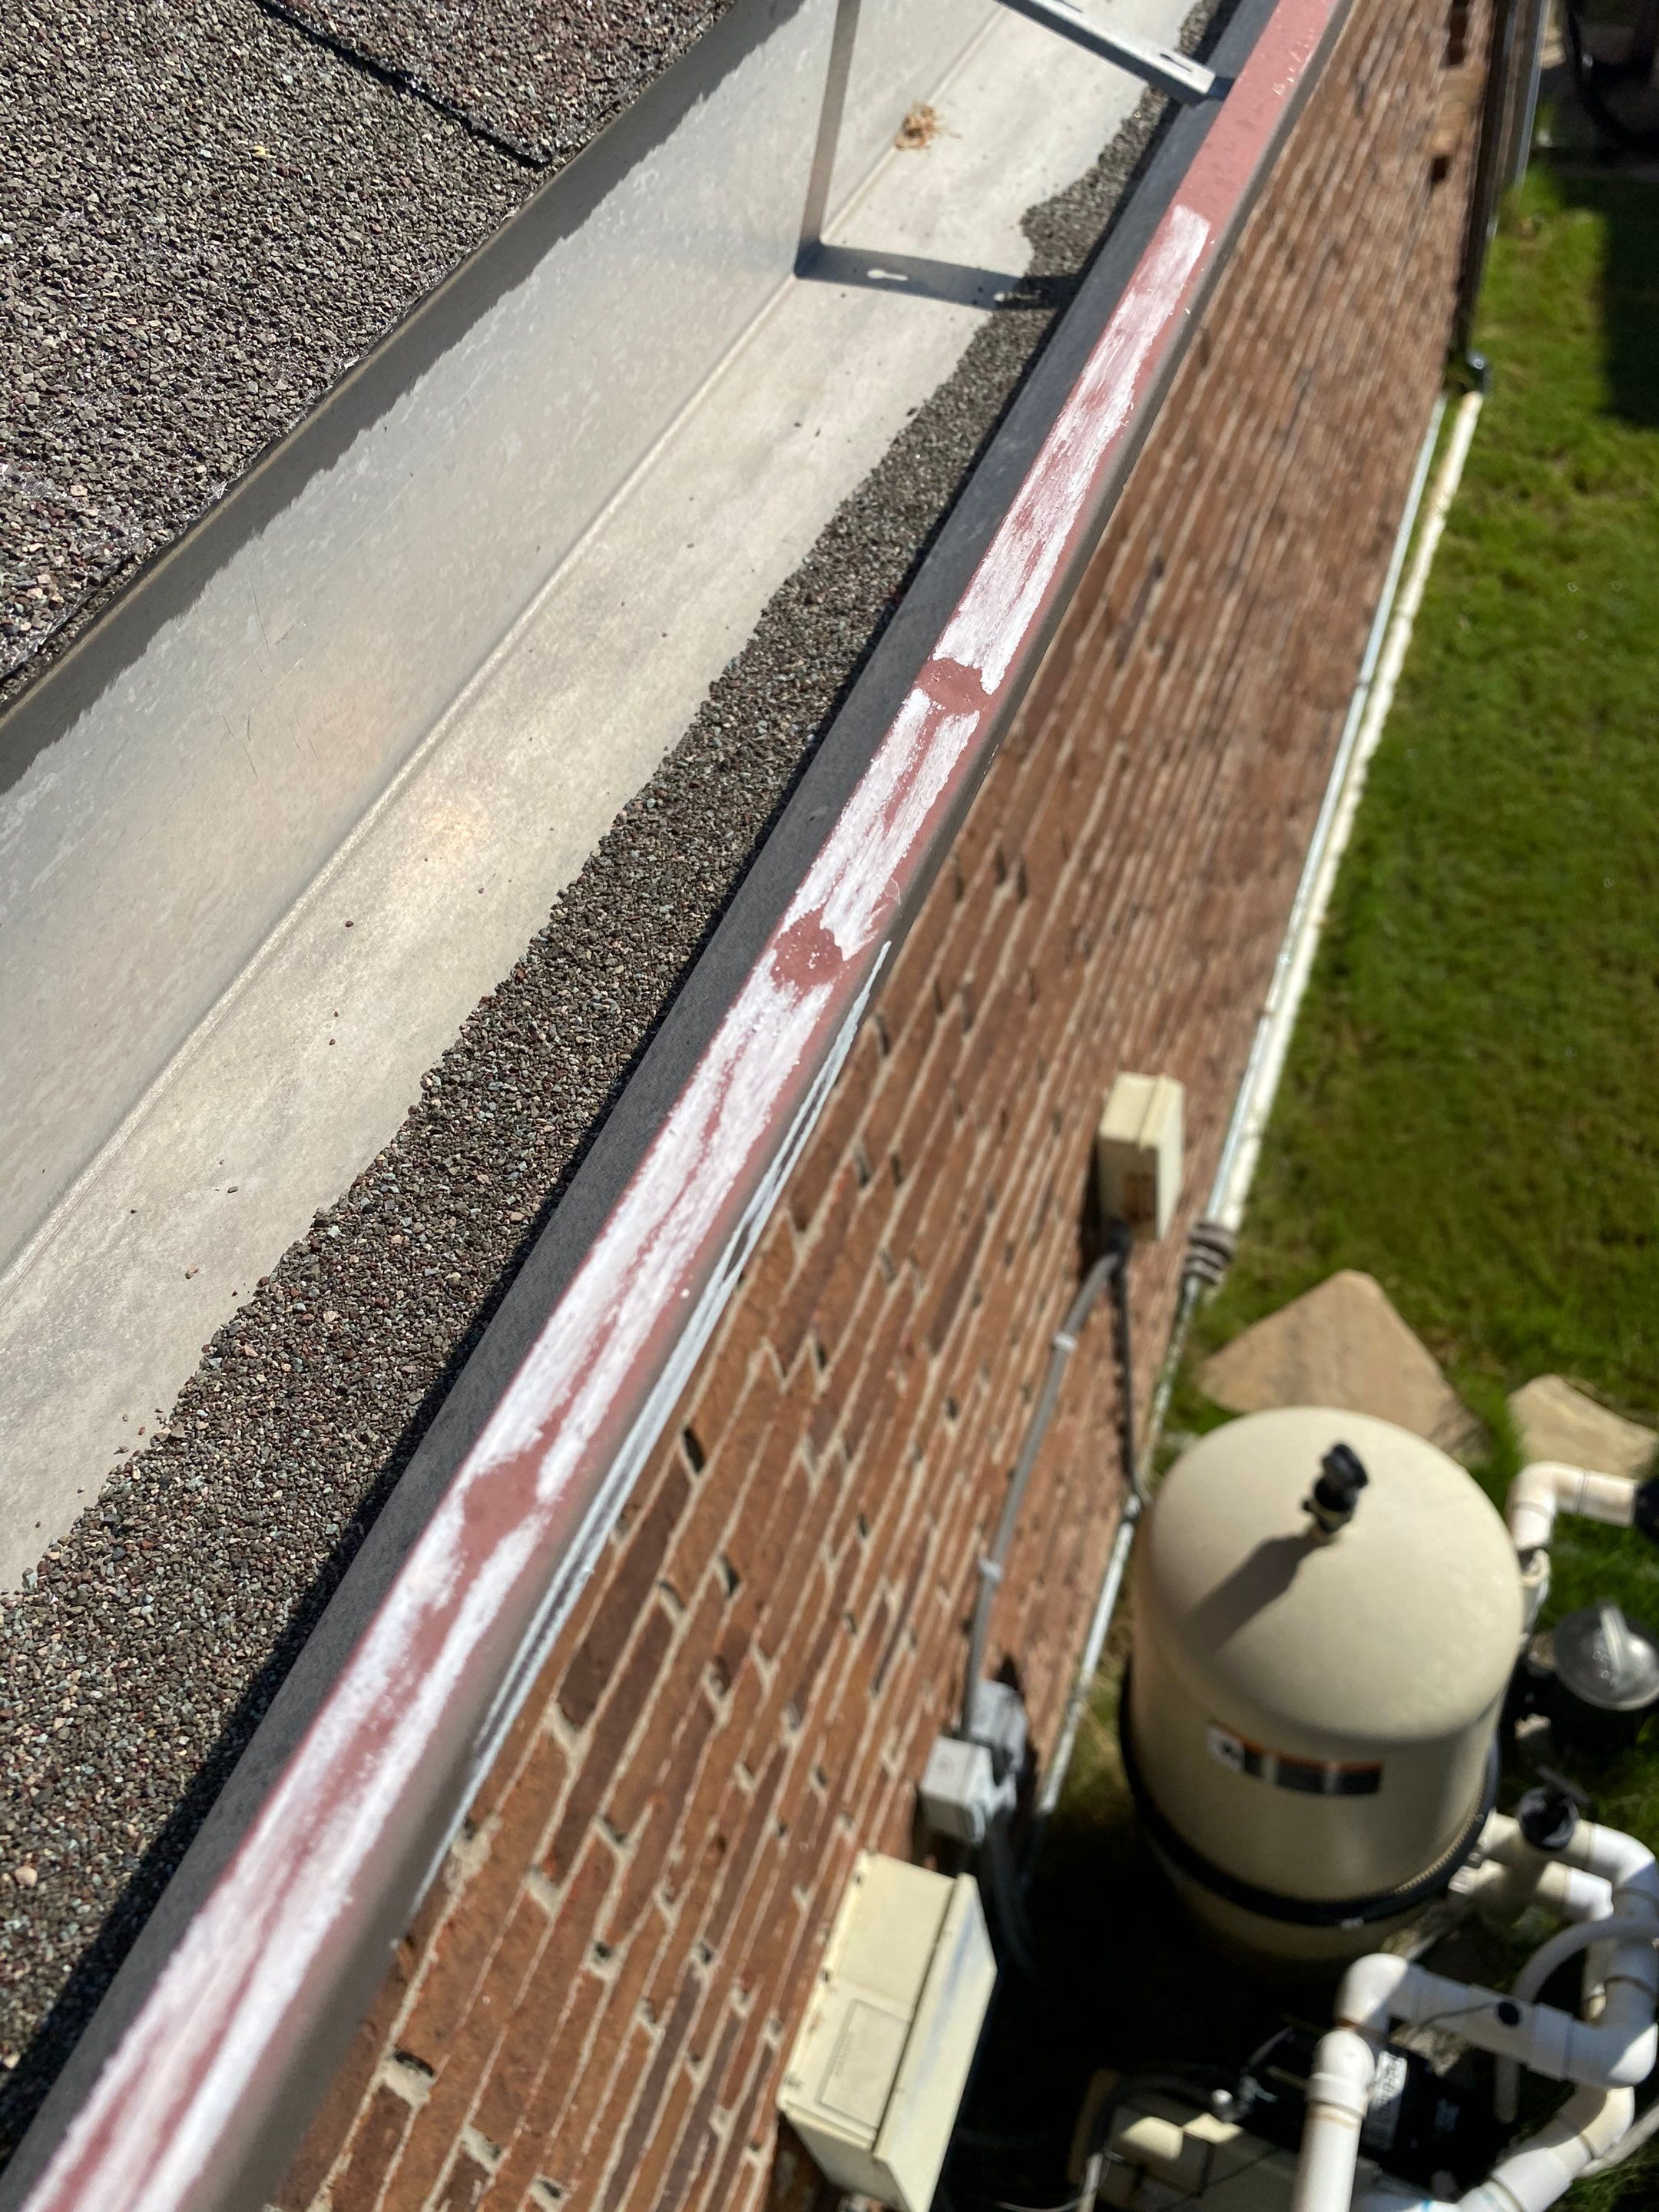 We preform a free roof inspection and notify your insurance company of any damage that we find.